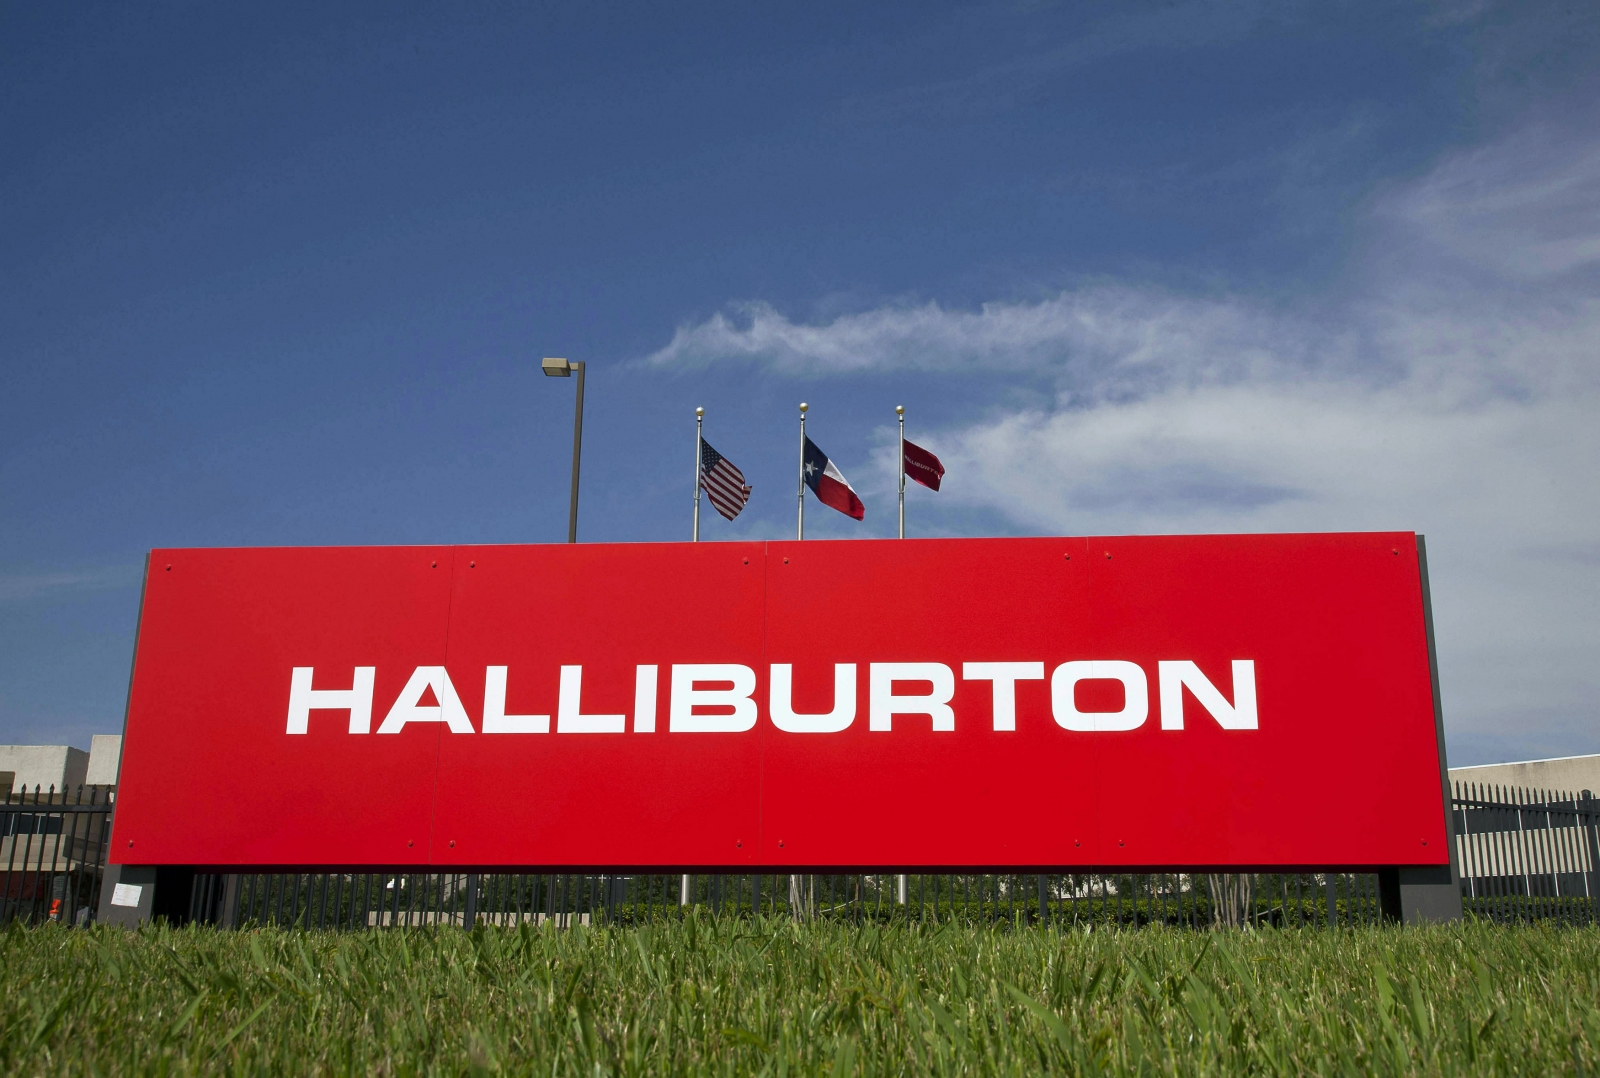 Halliburton to acquire Baker Hughes